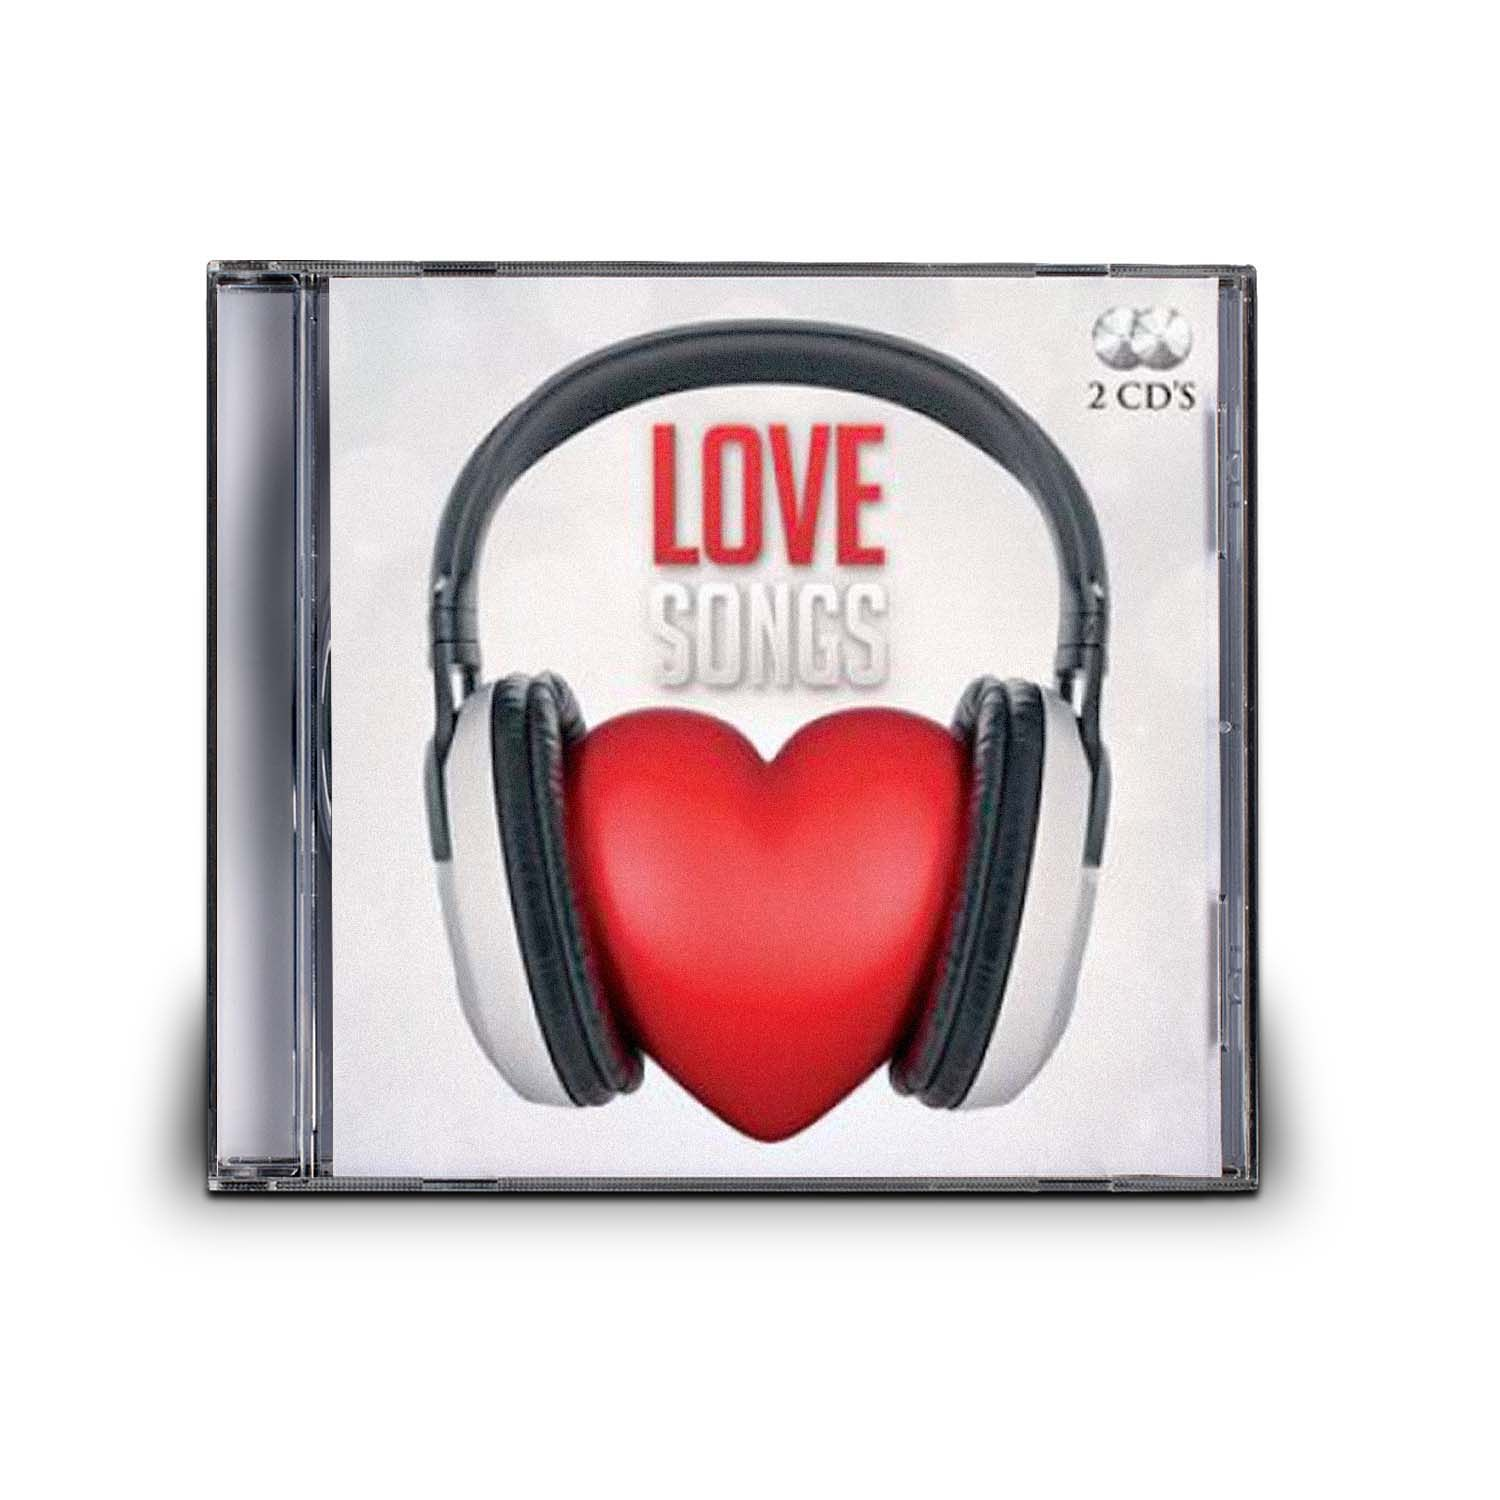 CD LOVE SONGS (DUPLO)